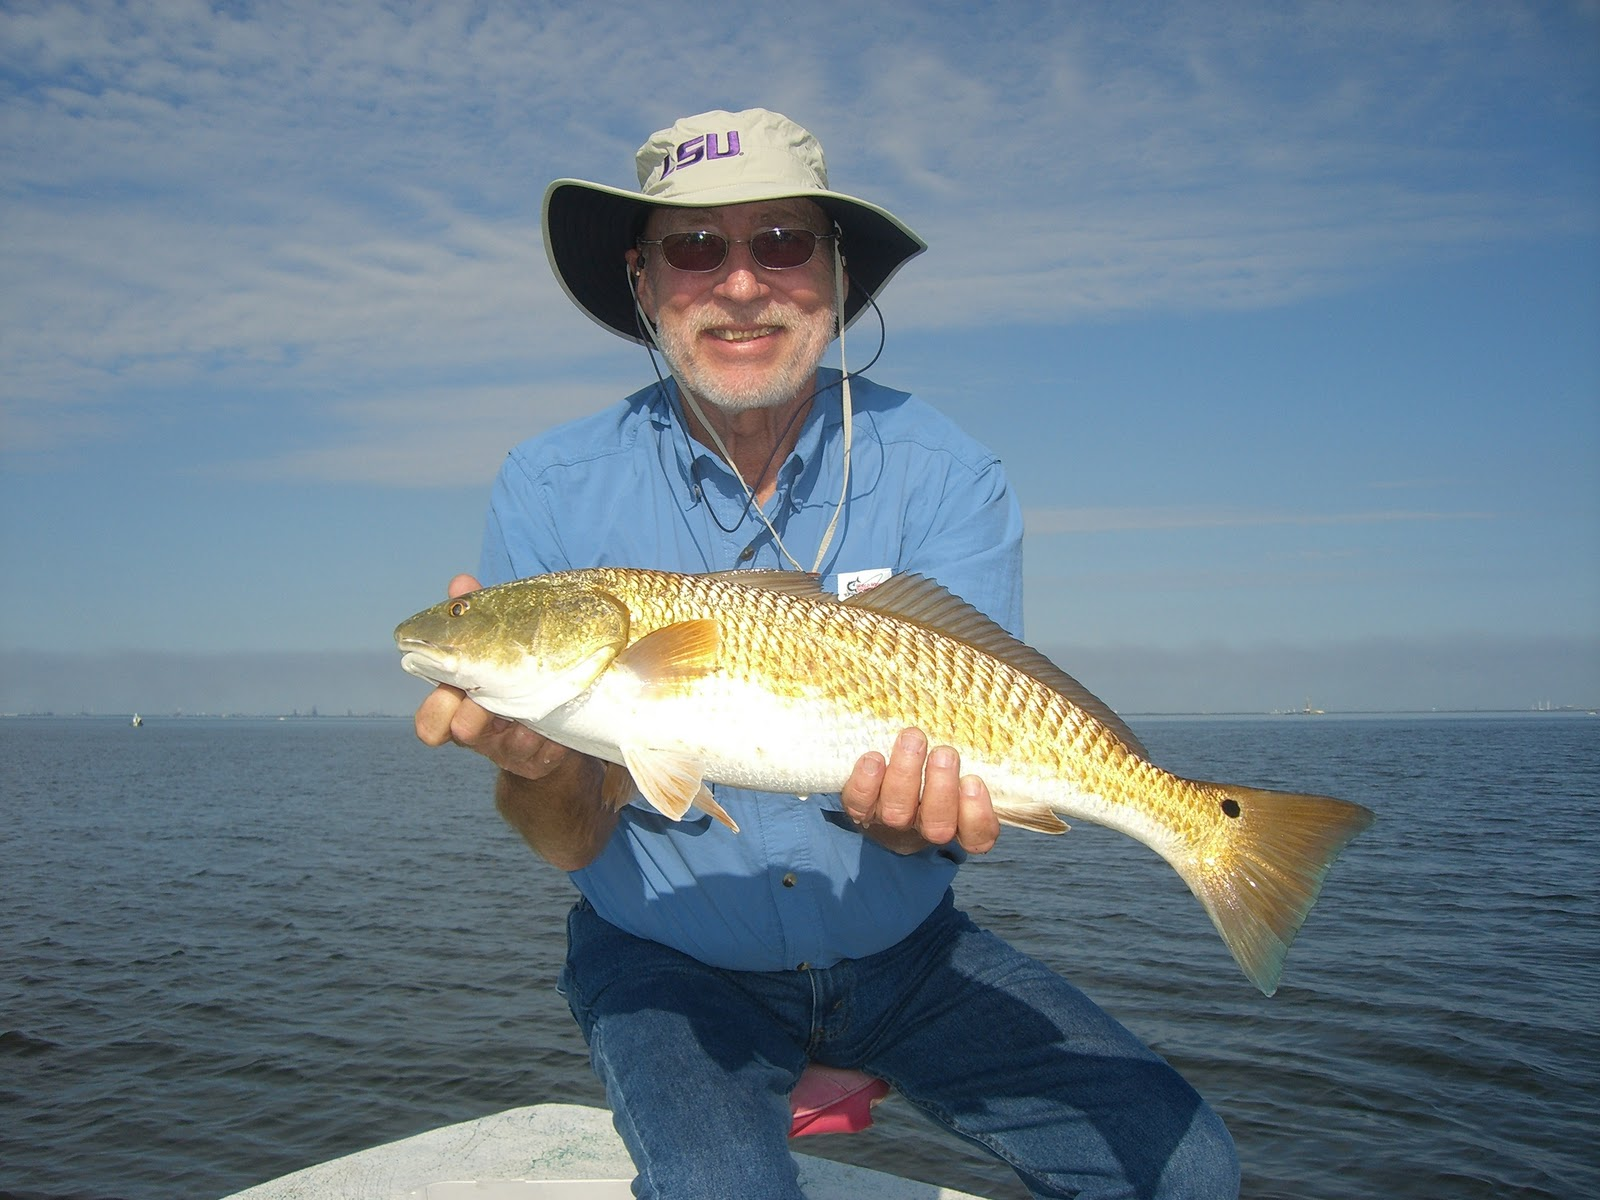 Galveston bay texas and sabine lake fishing reports 10 22 for Galveston fishing reports